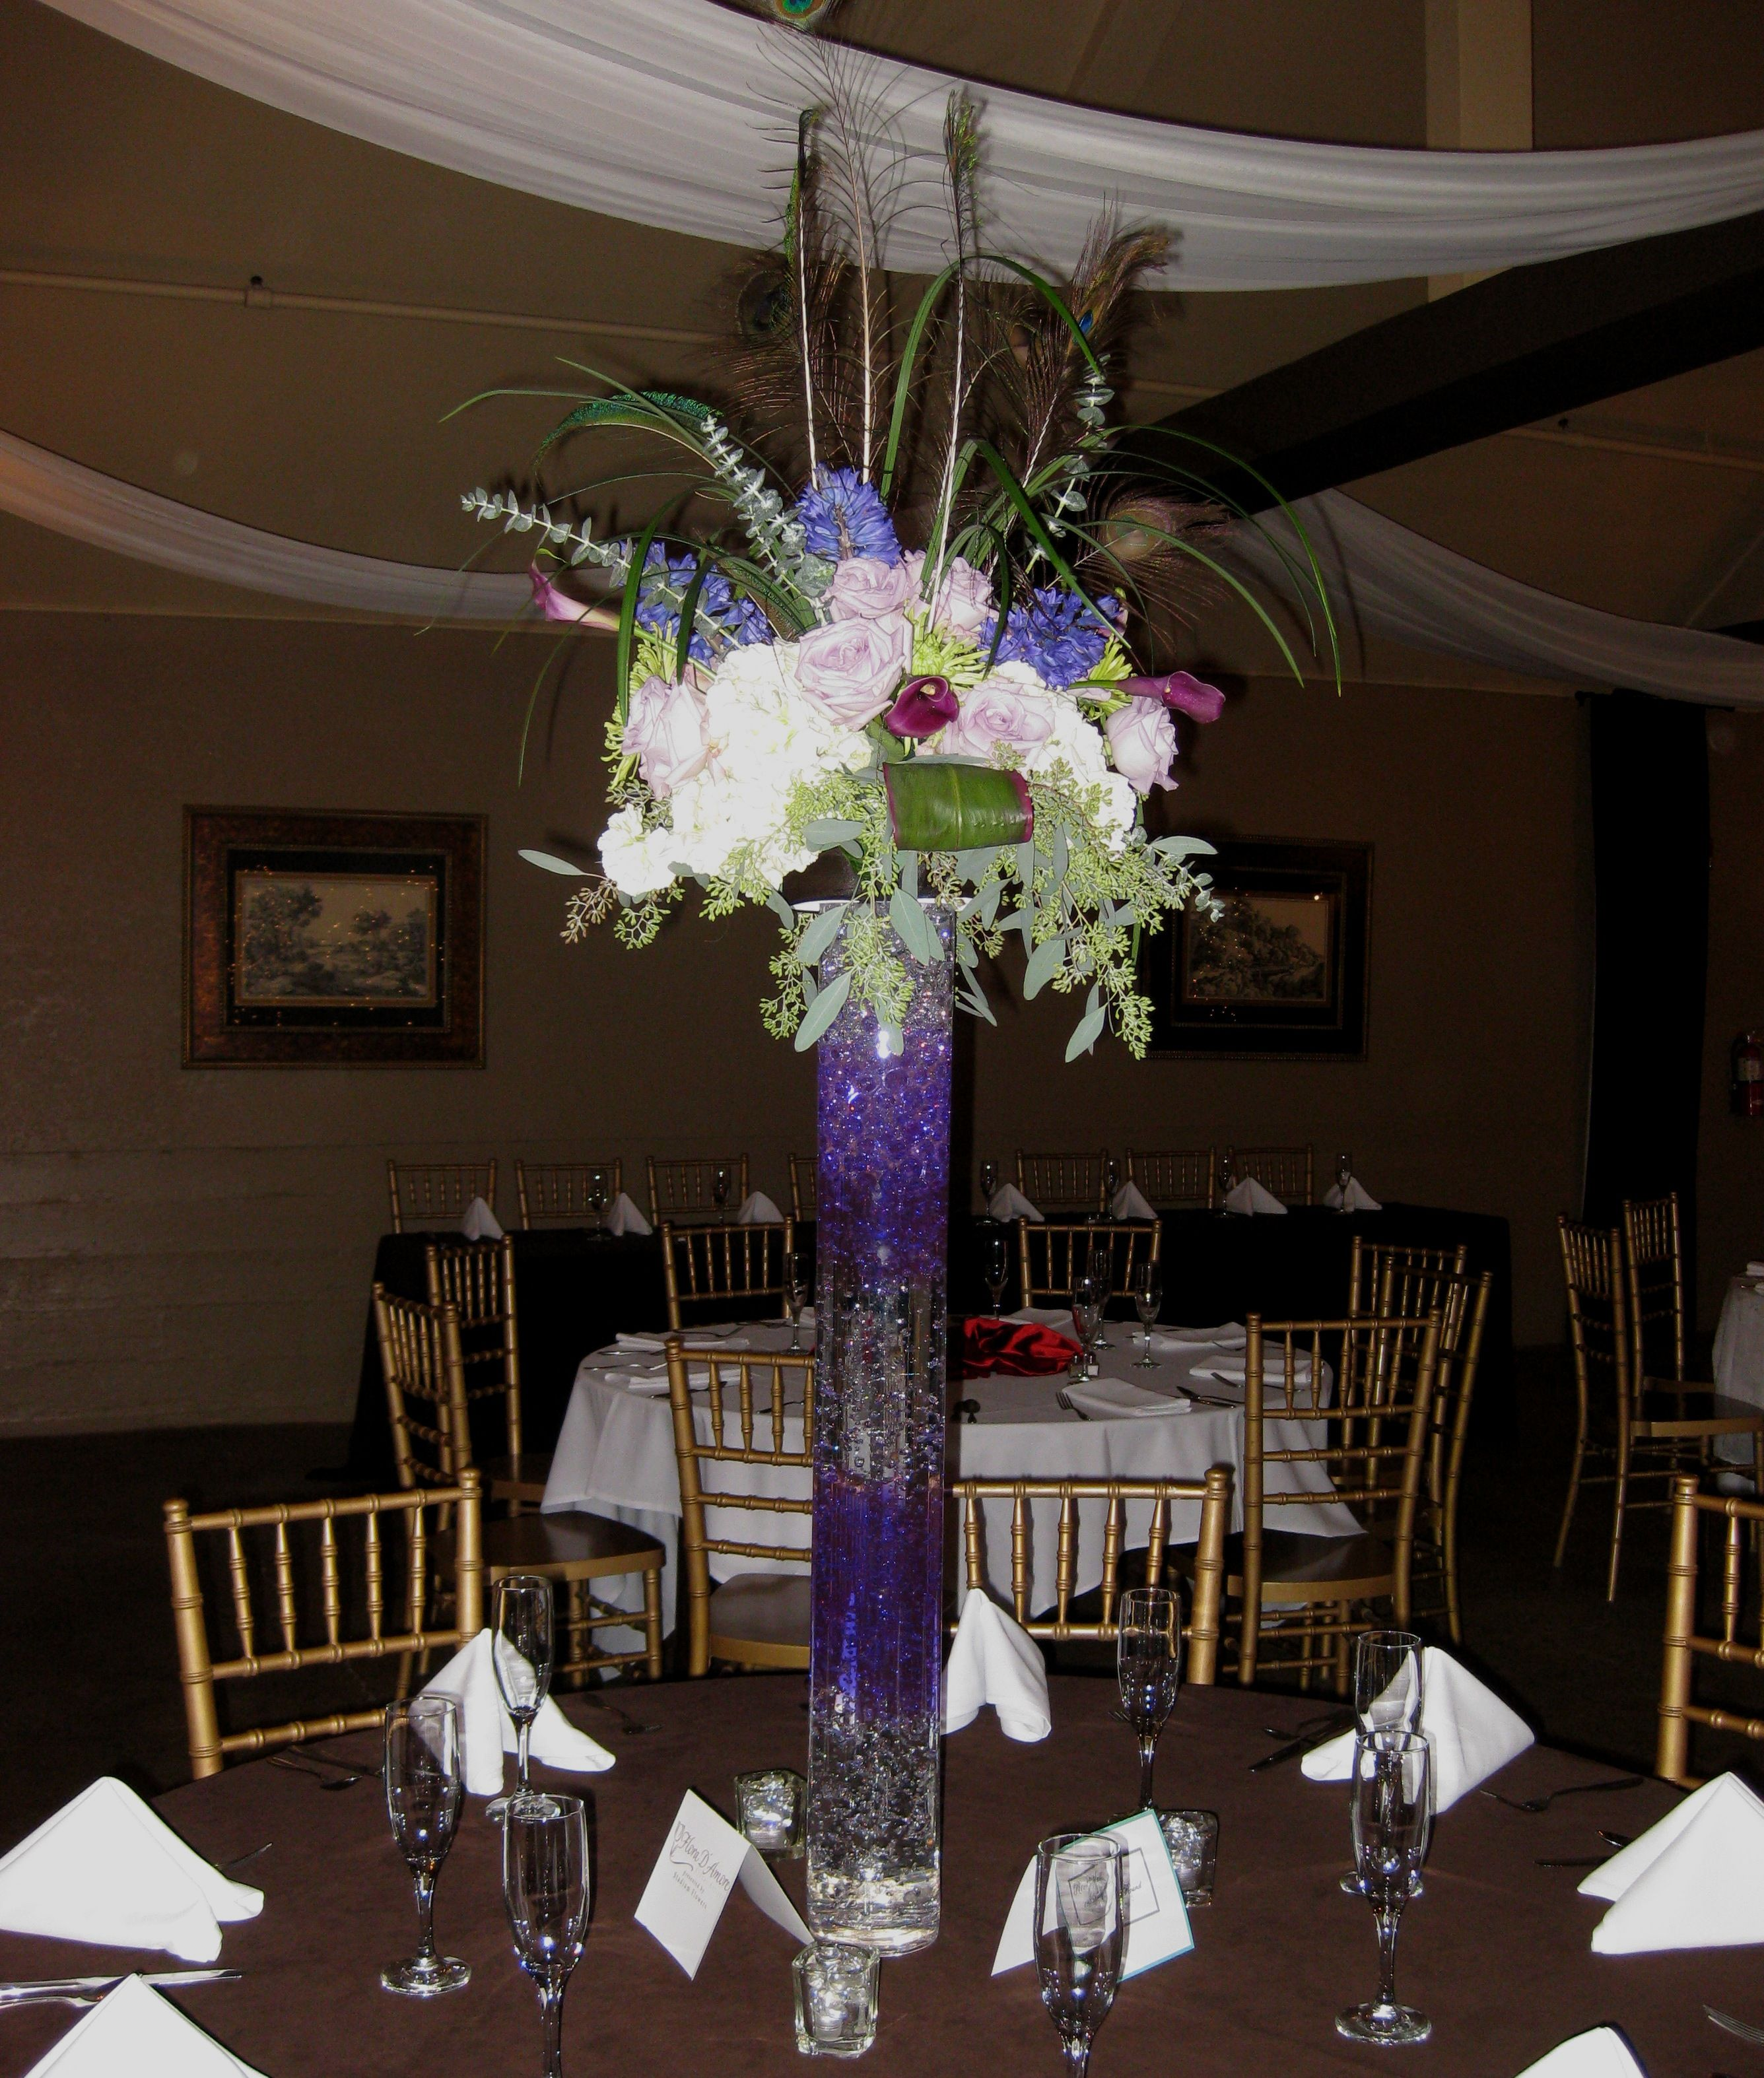 The Above Picture Features A Tall Cylinder Vase With Crystal Soil